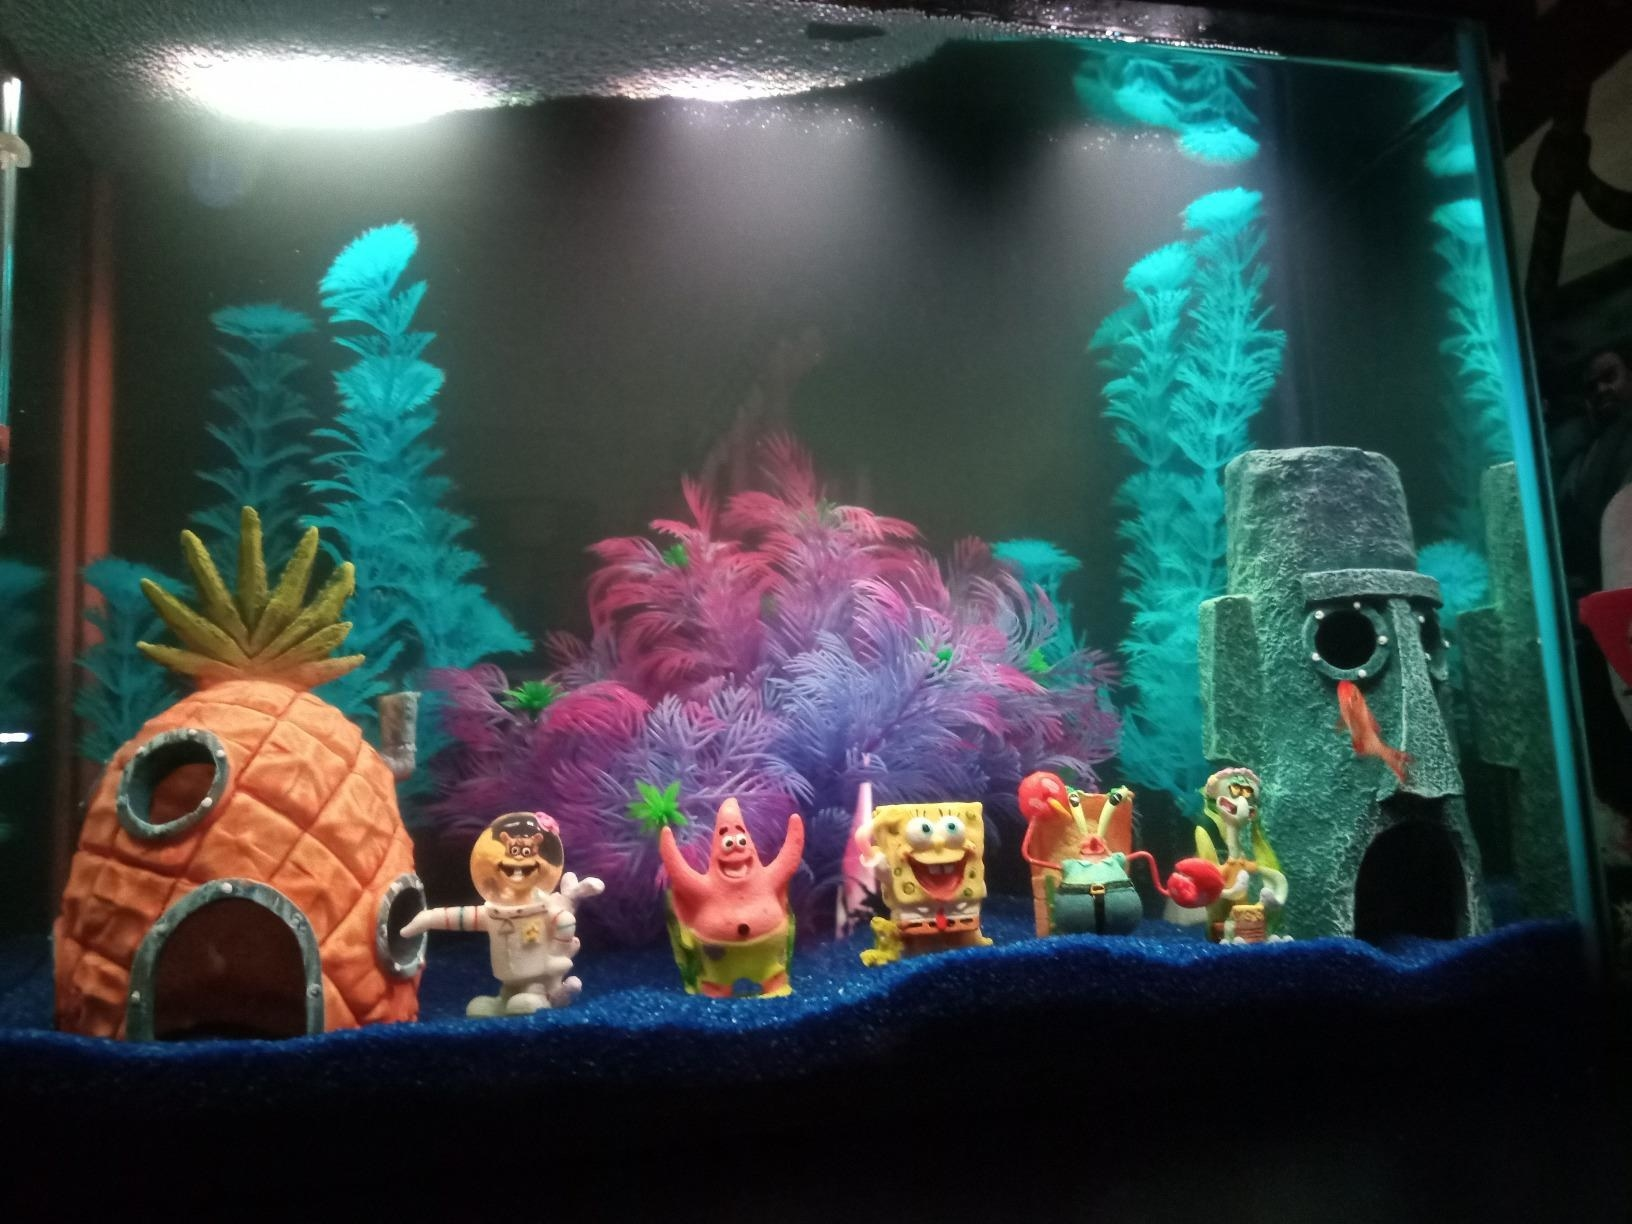 Reviewer's tank with six Spongebob ornaments, including Spongebob, Patrick, and Squidward, posed at the bottom